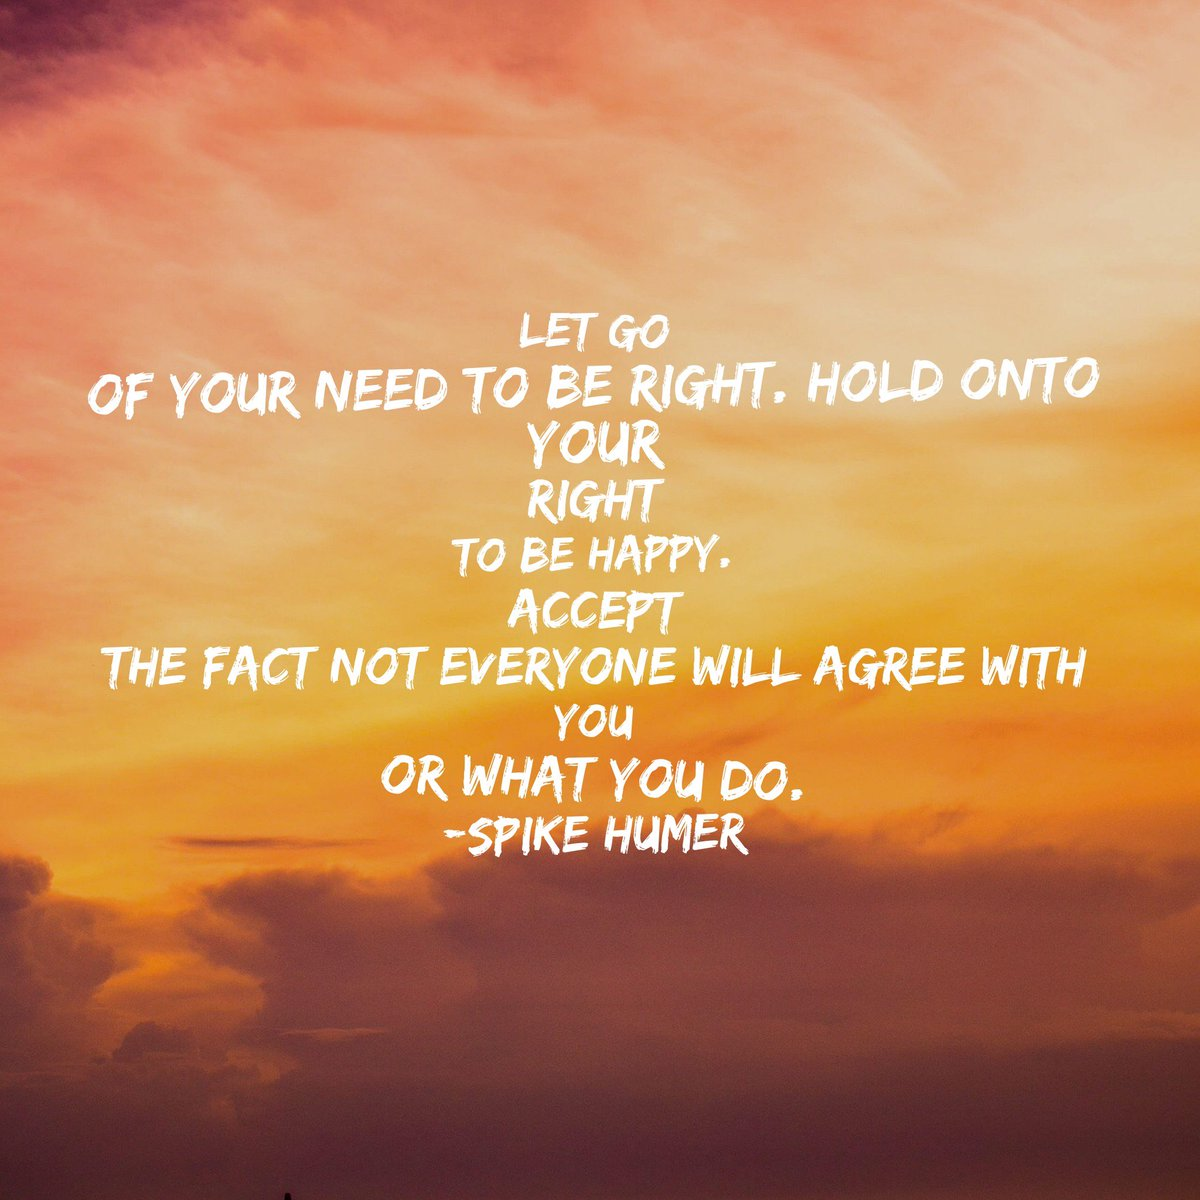 Let go of your need to be right. Hold onto your right to be happy. https://t.co/13r4vQk17K